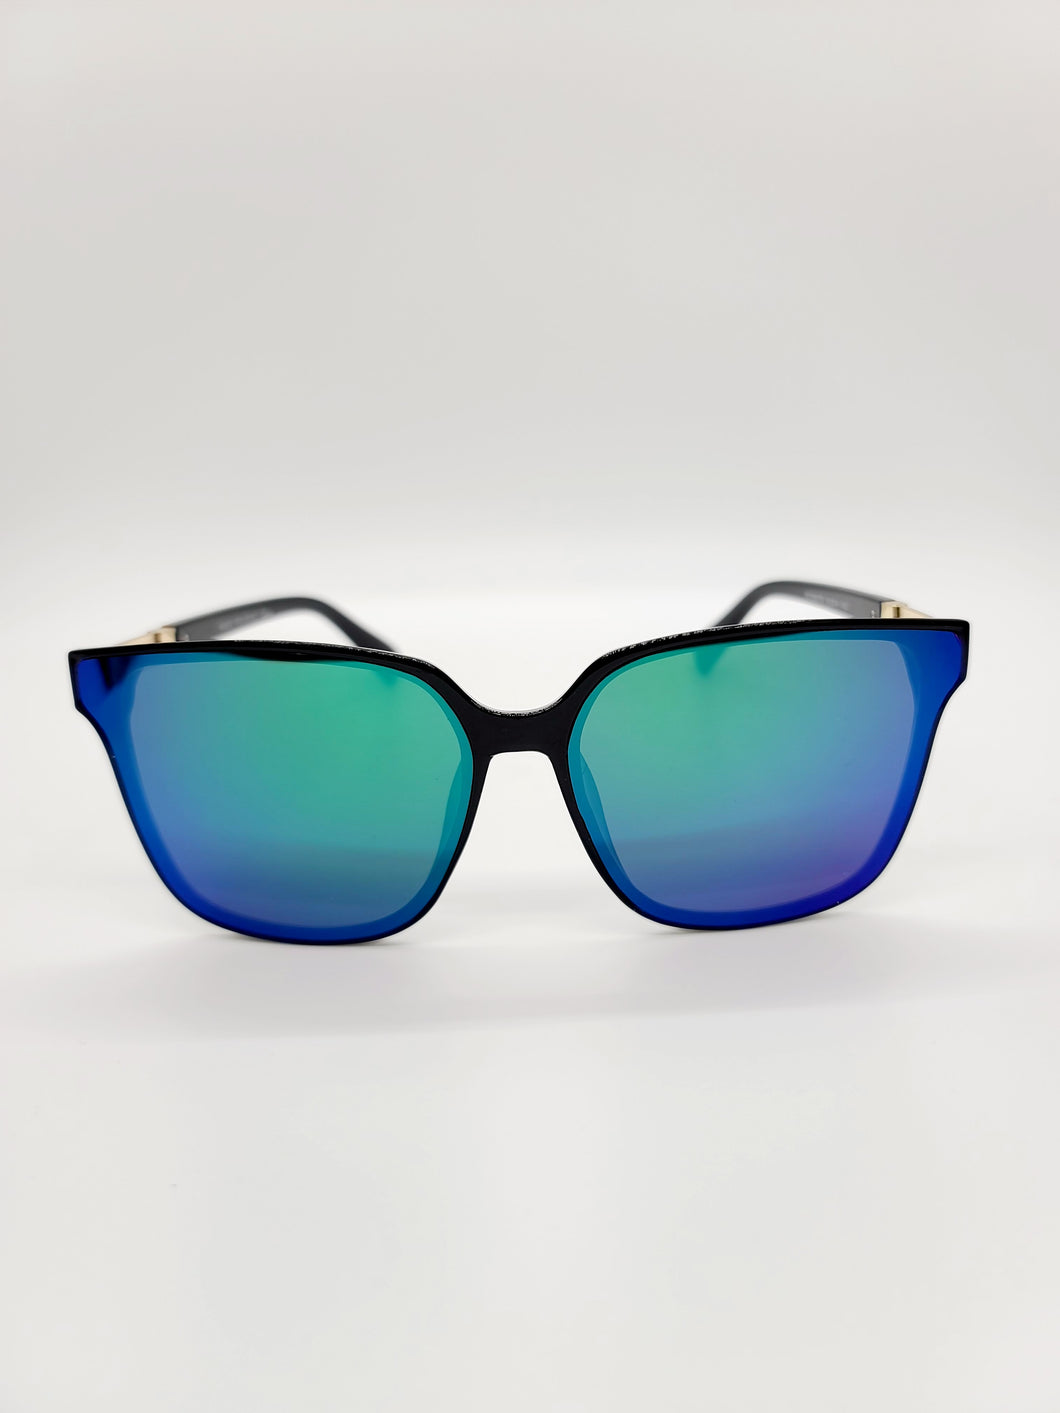 green and purple reflective lens sunglasses with metal arm detail